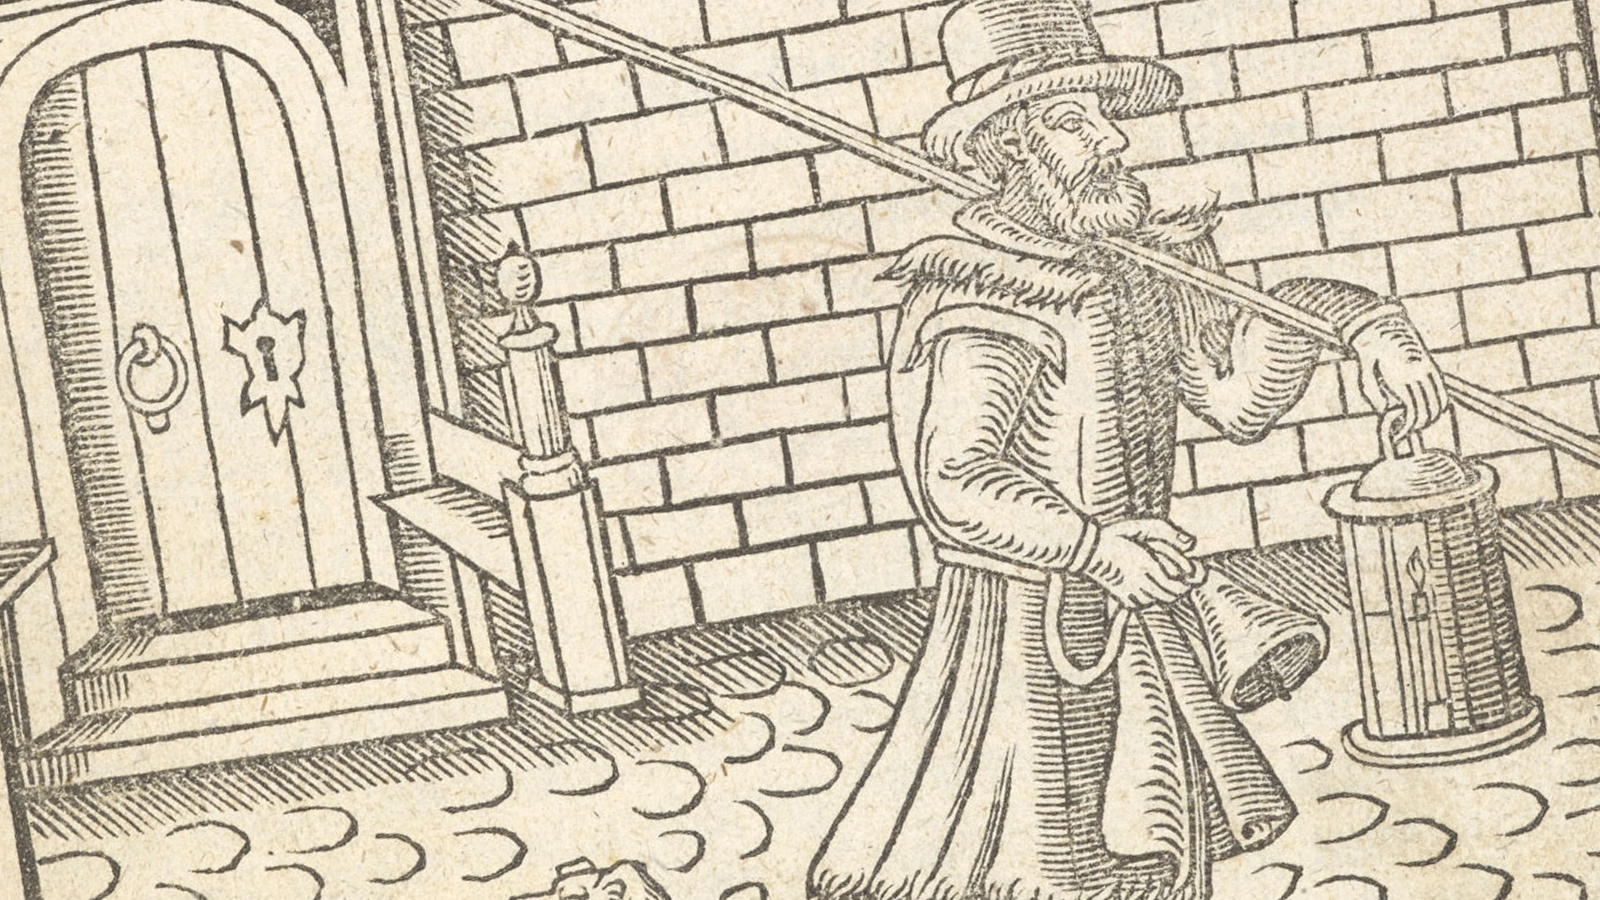 The social structure in Elizabethan England